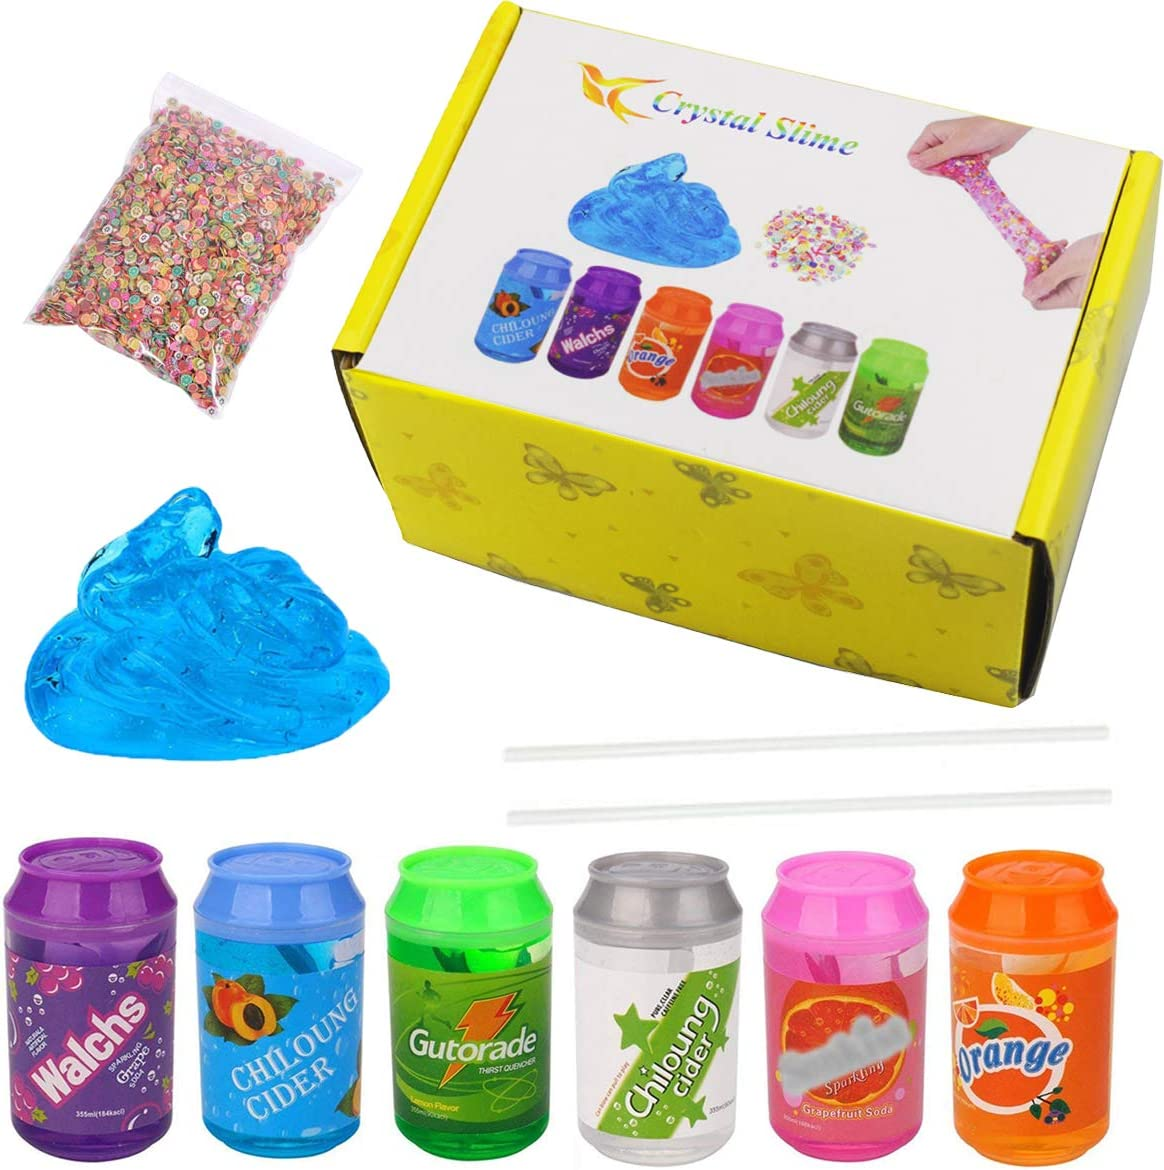 BESTZY Clear Crystal Slime - 6 Cans Fluffy Slime with 2 Straws and 1 Pack Fruit Slice, Super Soft Non-Sticky Putty Toy, for Boys and Girls